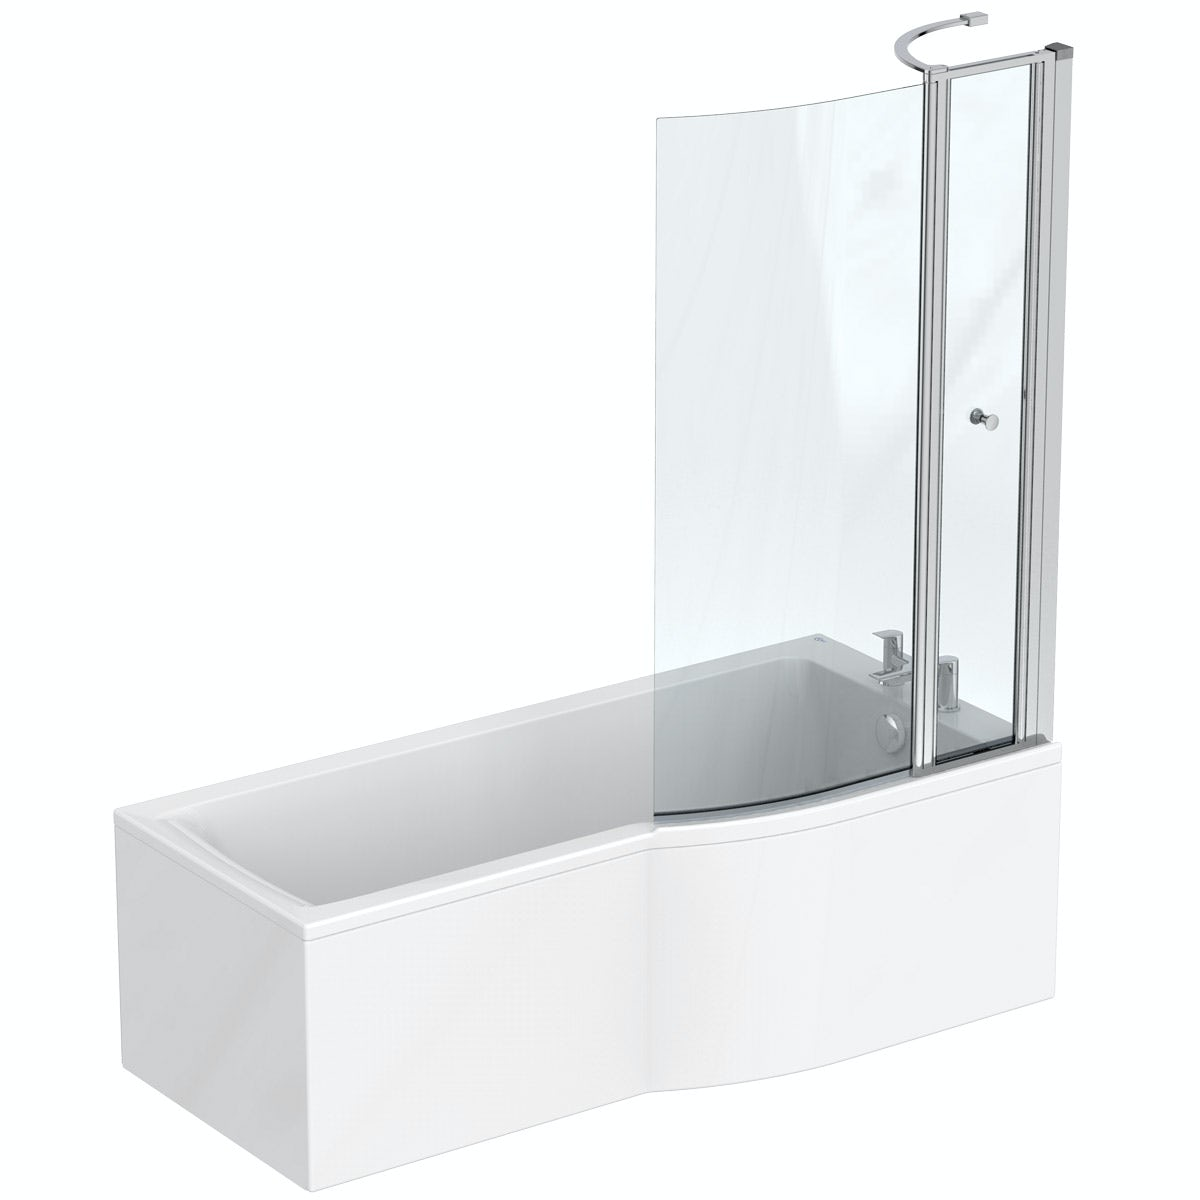 Ideal Standard Concept Air Idealform right hand shower bath 1700 x 800